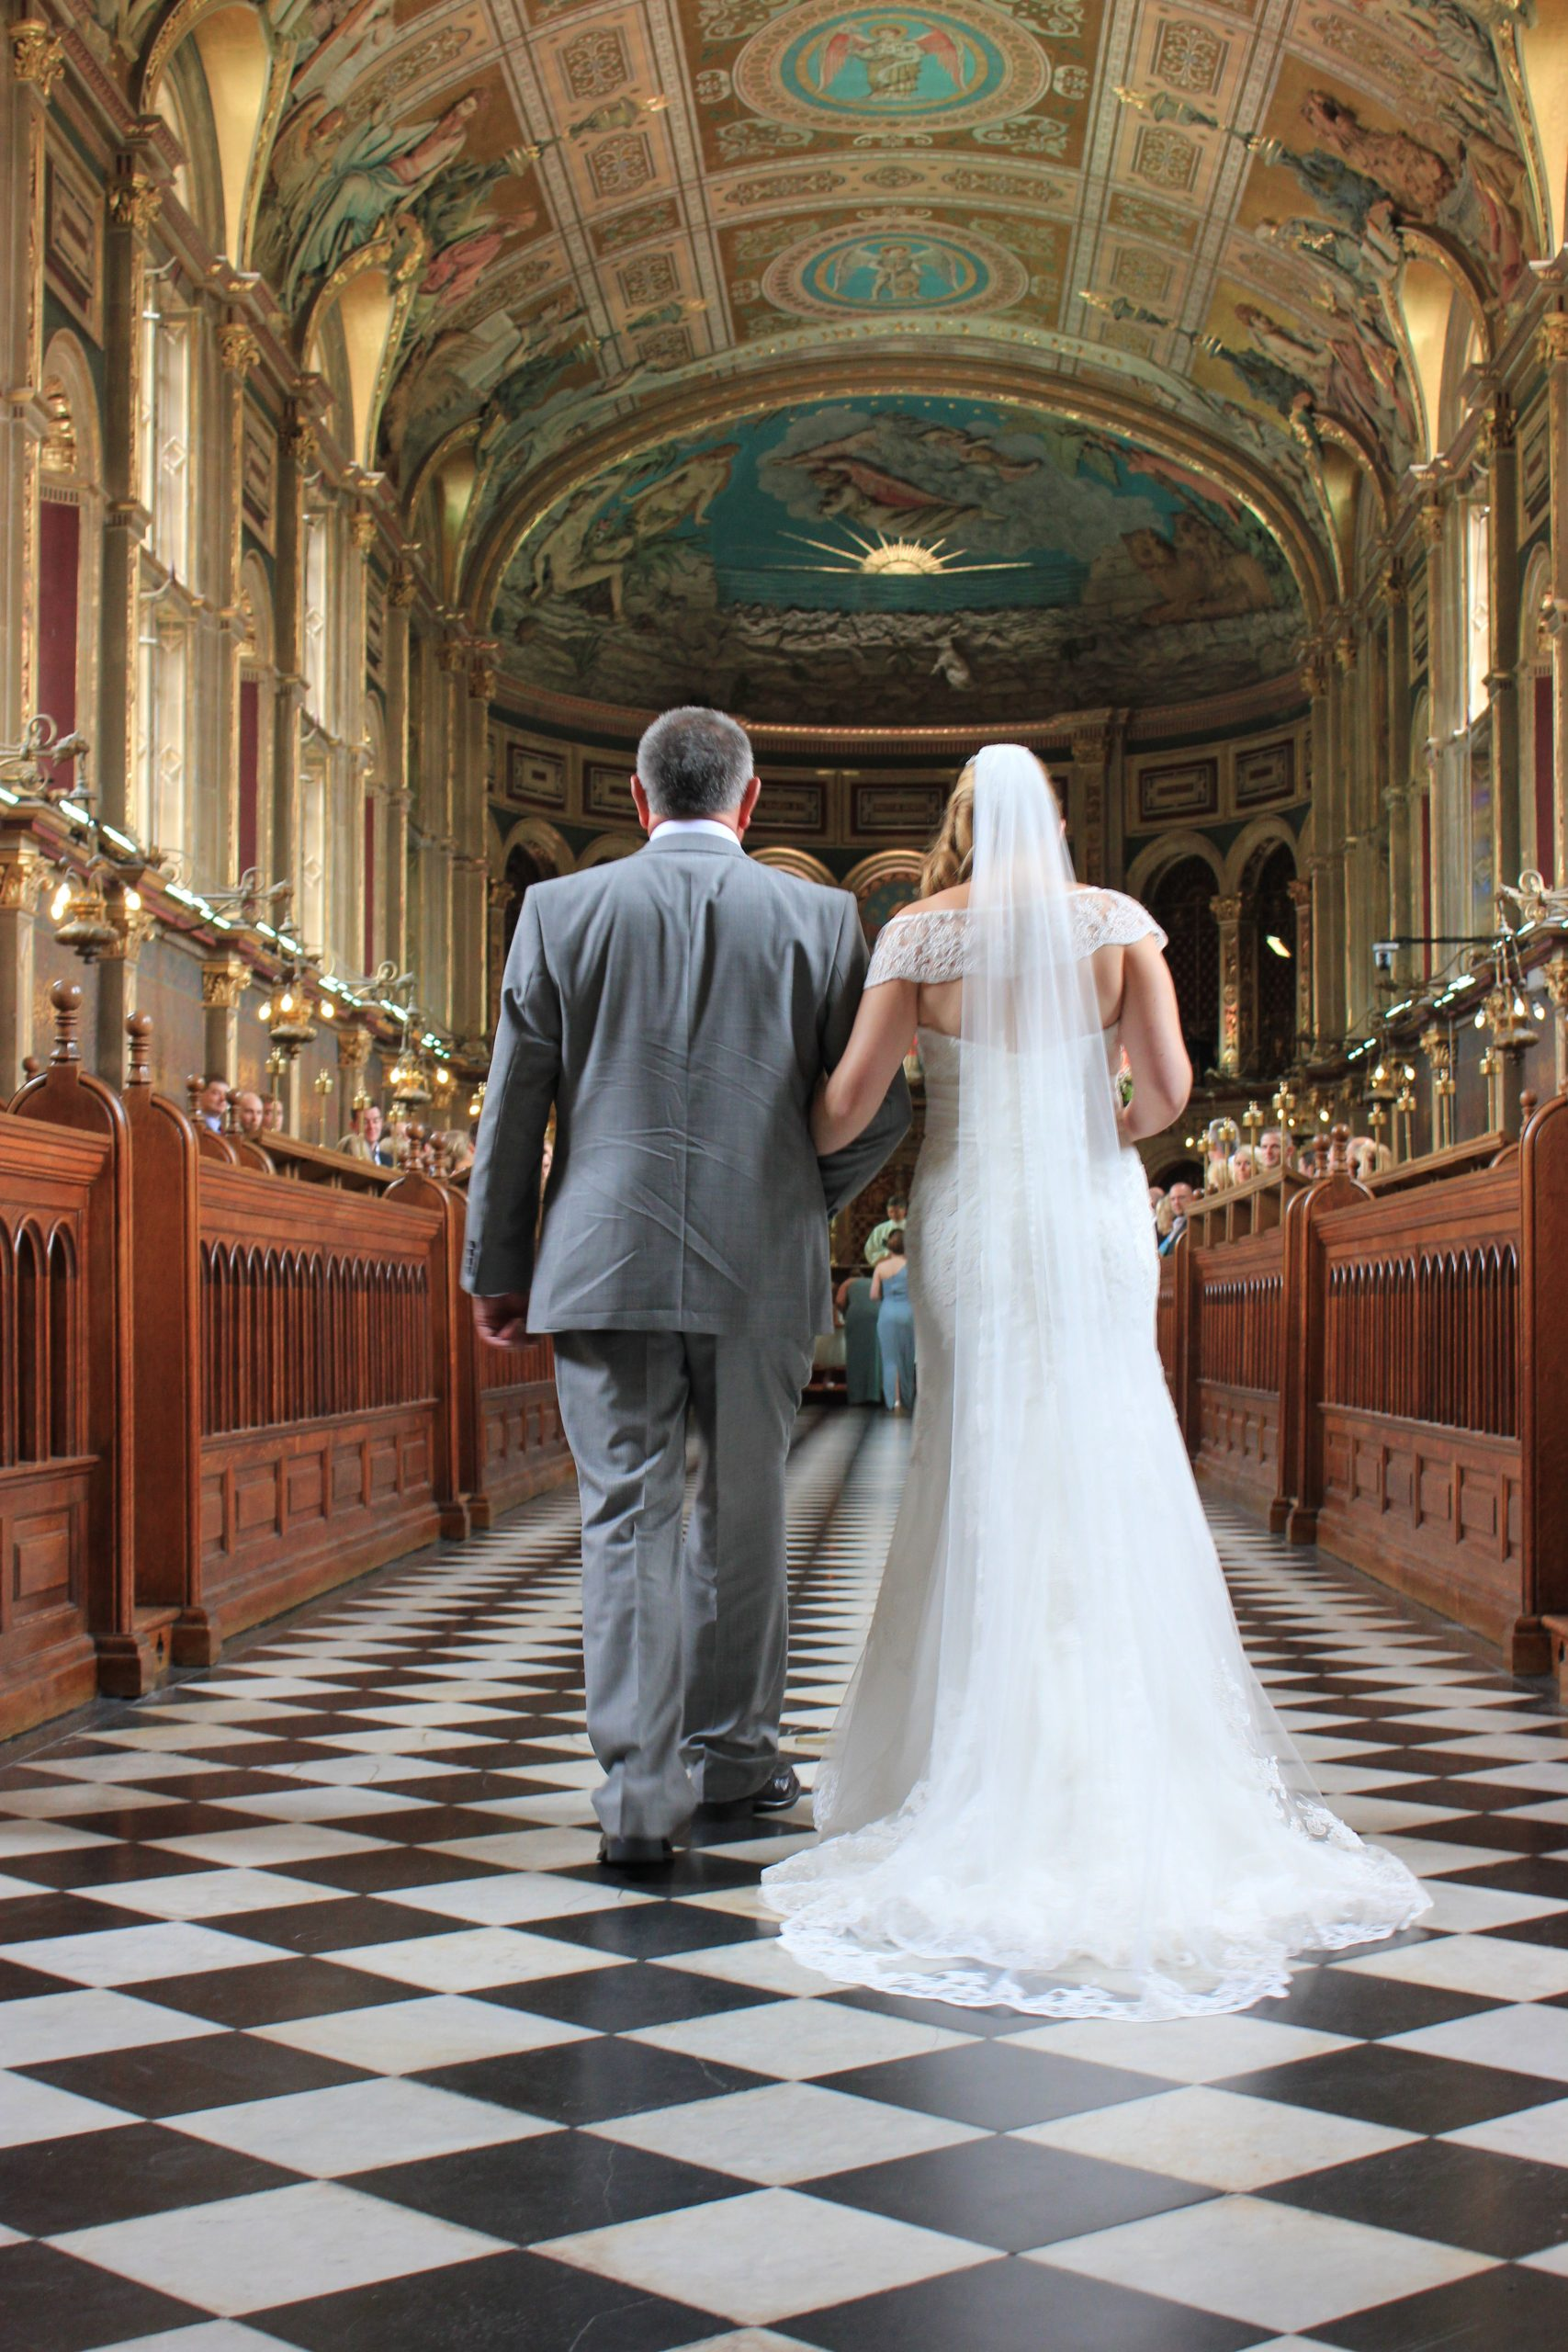 Bride& her dad walking down the aisle of a church with a black & white chequered floor.